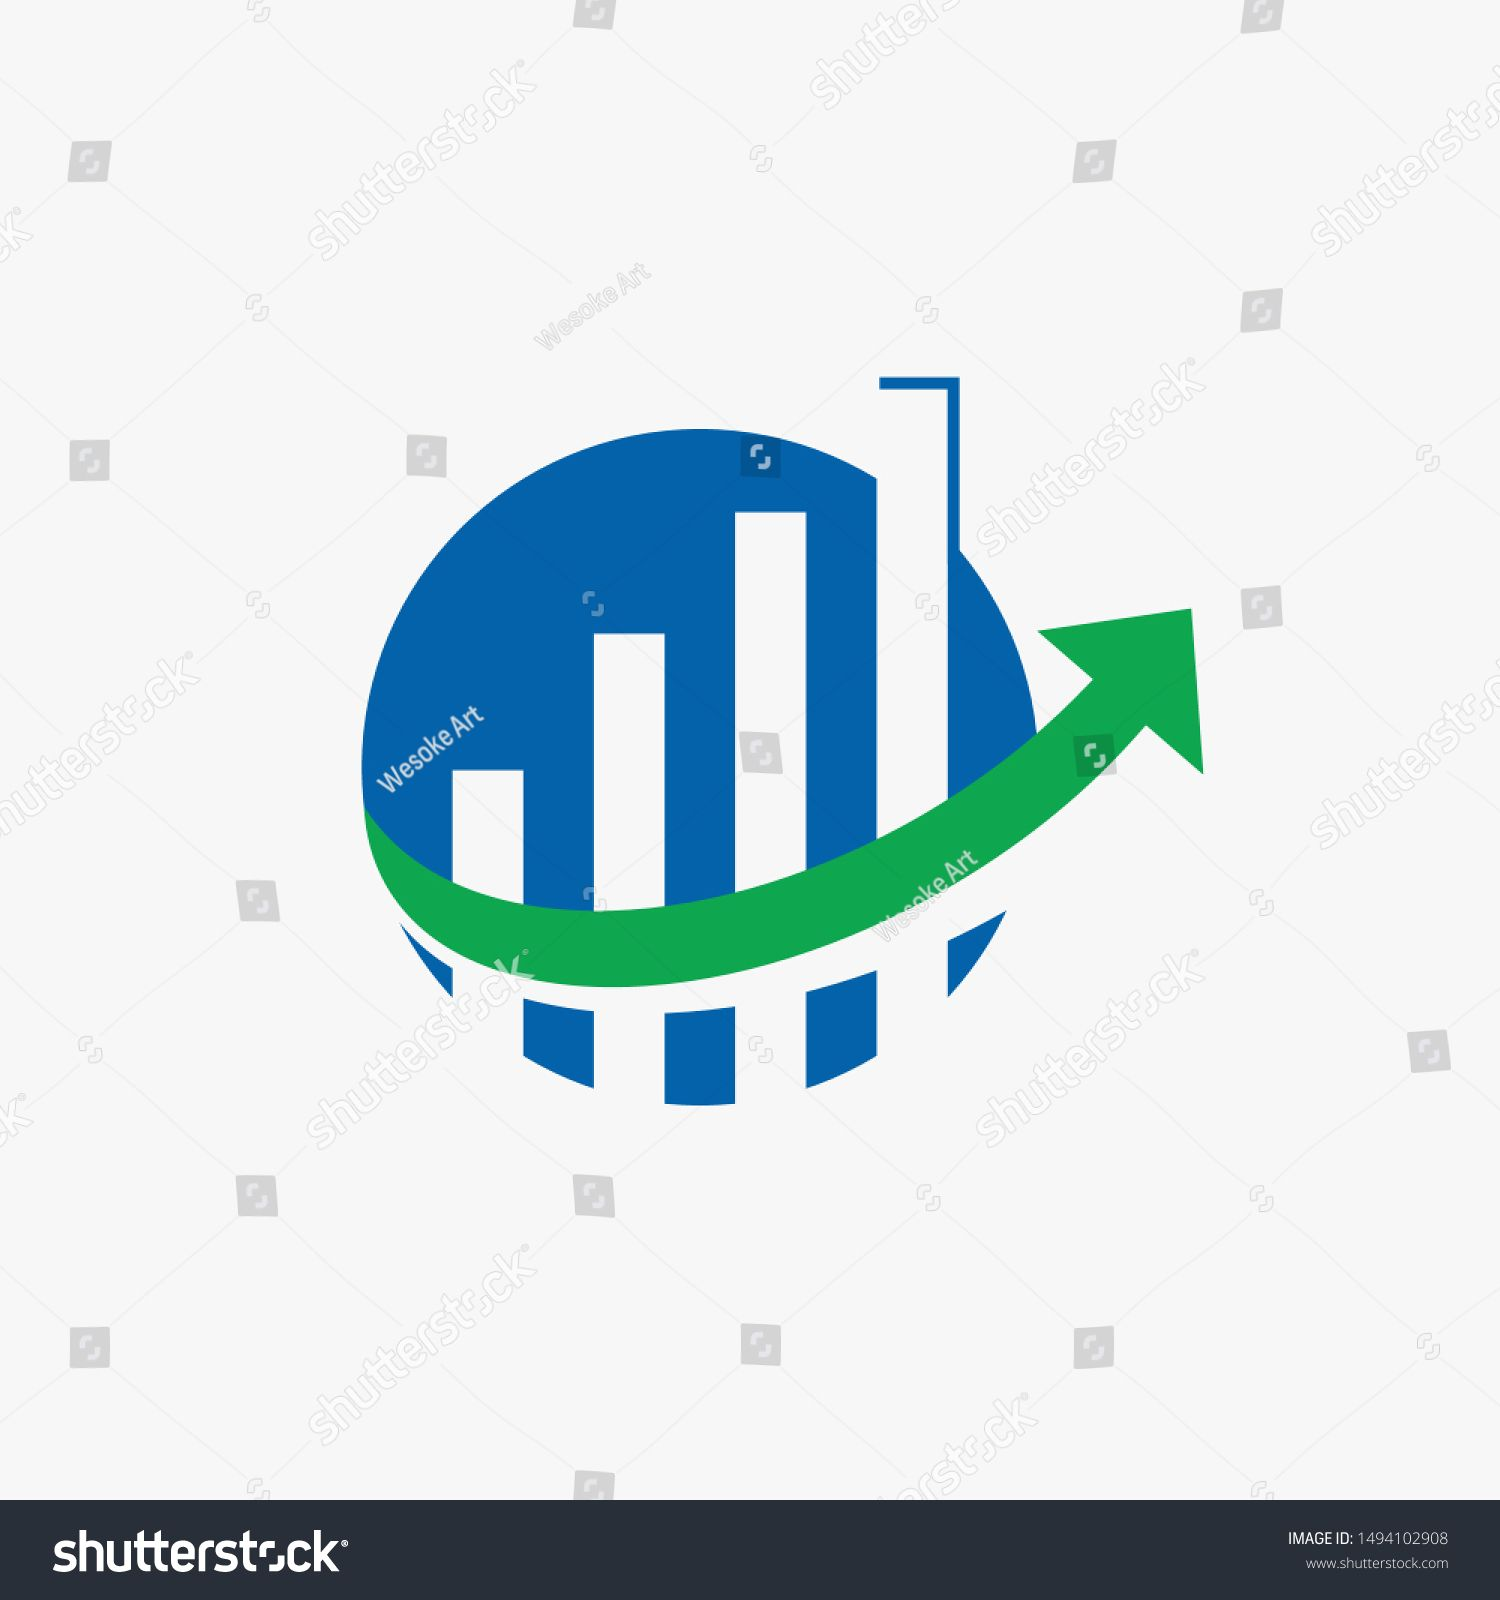 Pin By Bryan Bender On Stock Market Logos In 2020 Arrow Logo Logo Icons Simple Logo Design